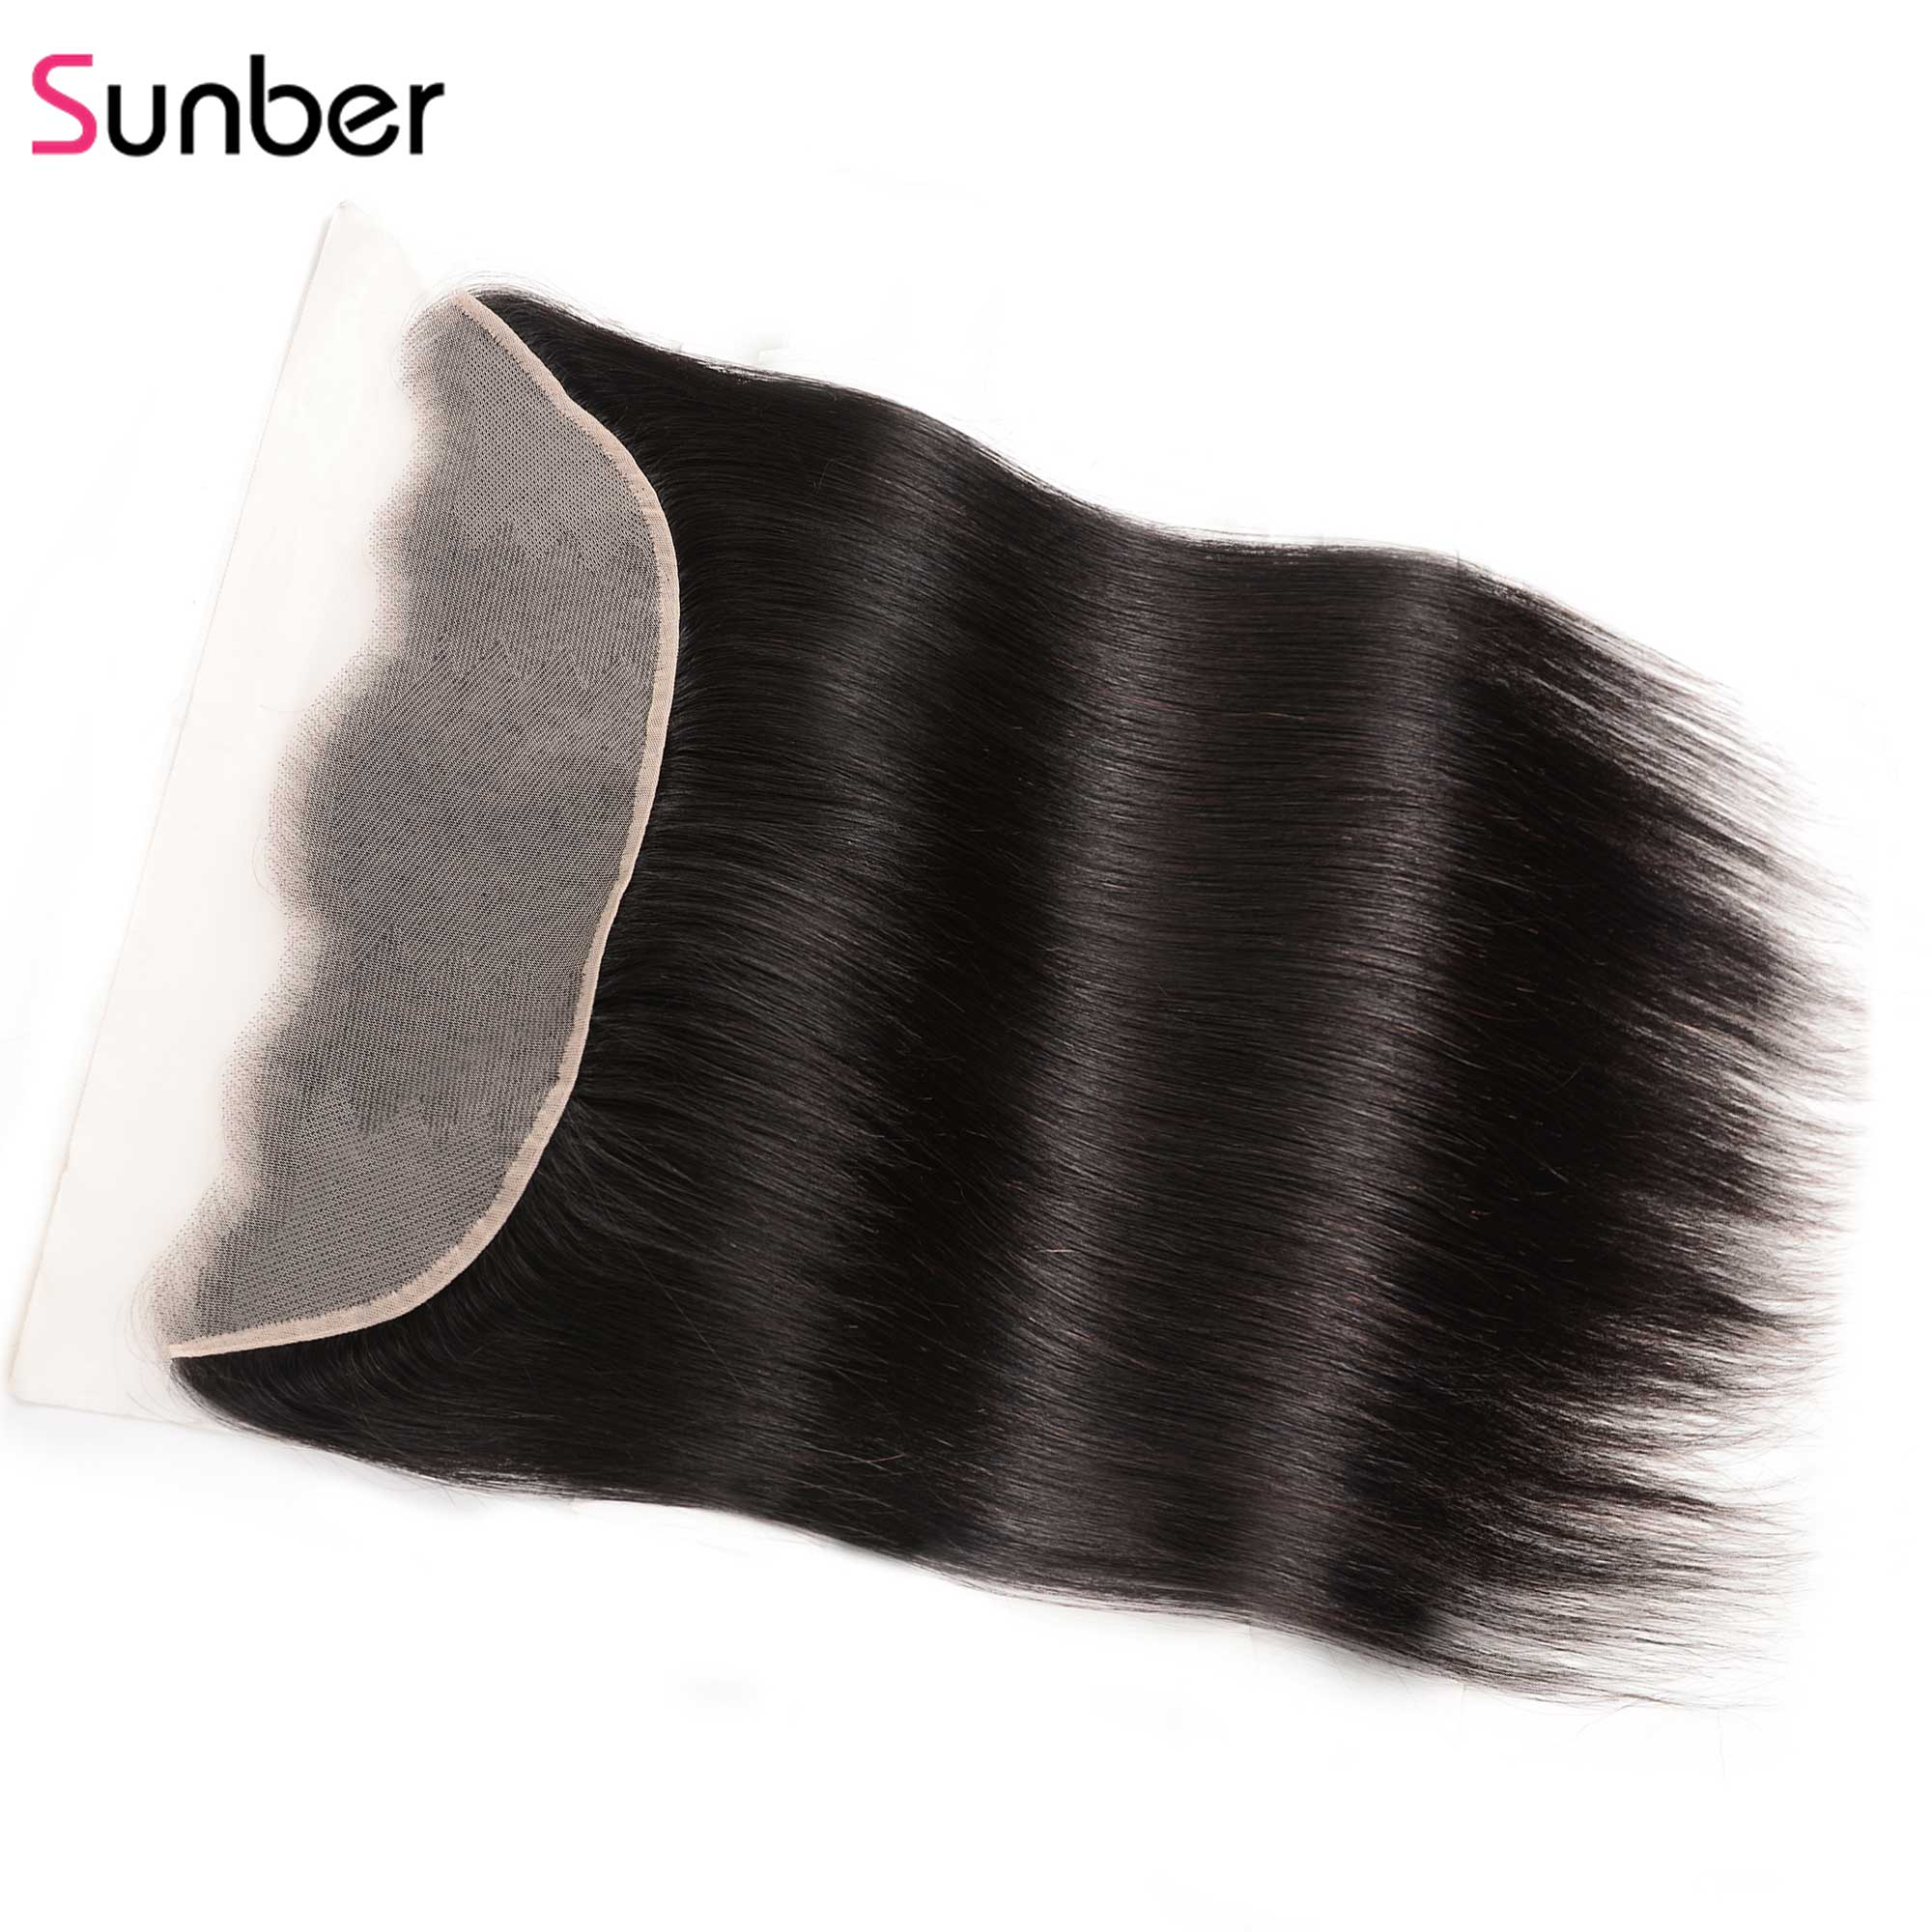 "Sunber Hair Straight Transparent Lace Frontal  Human Remy Hair 13""x4"" Ear to Ear Pre-Plucked Preuvian HD Frontal Hair(China)"